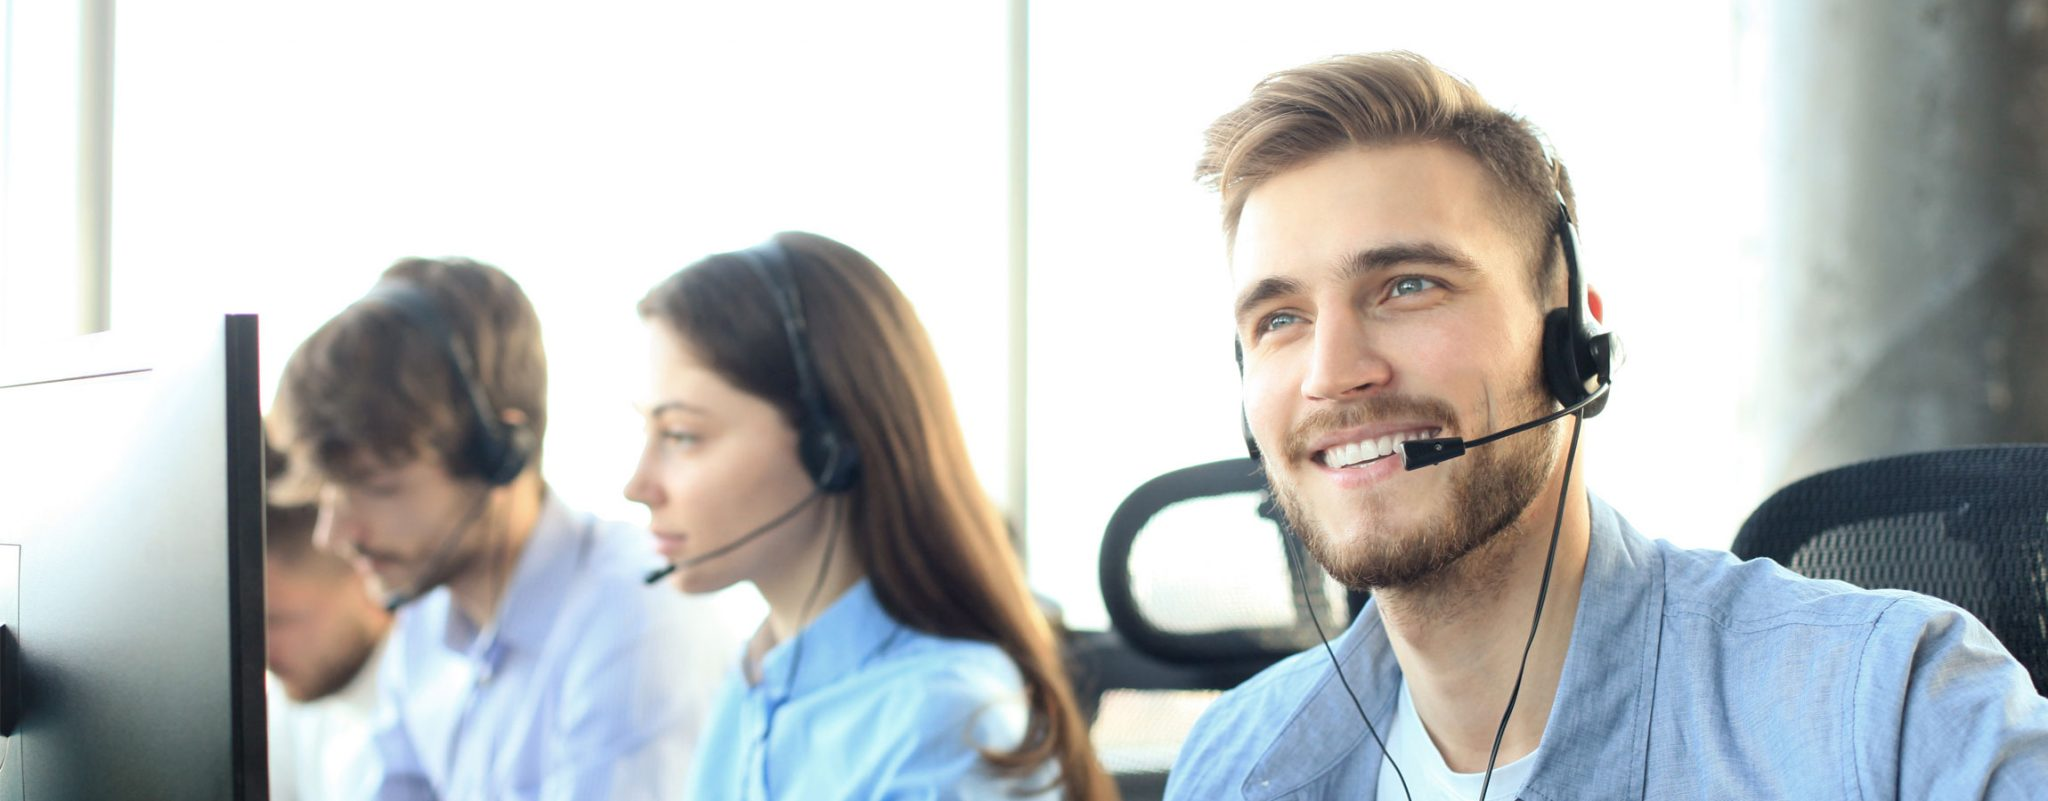 The 4 basic steps to customer service recovery